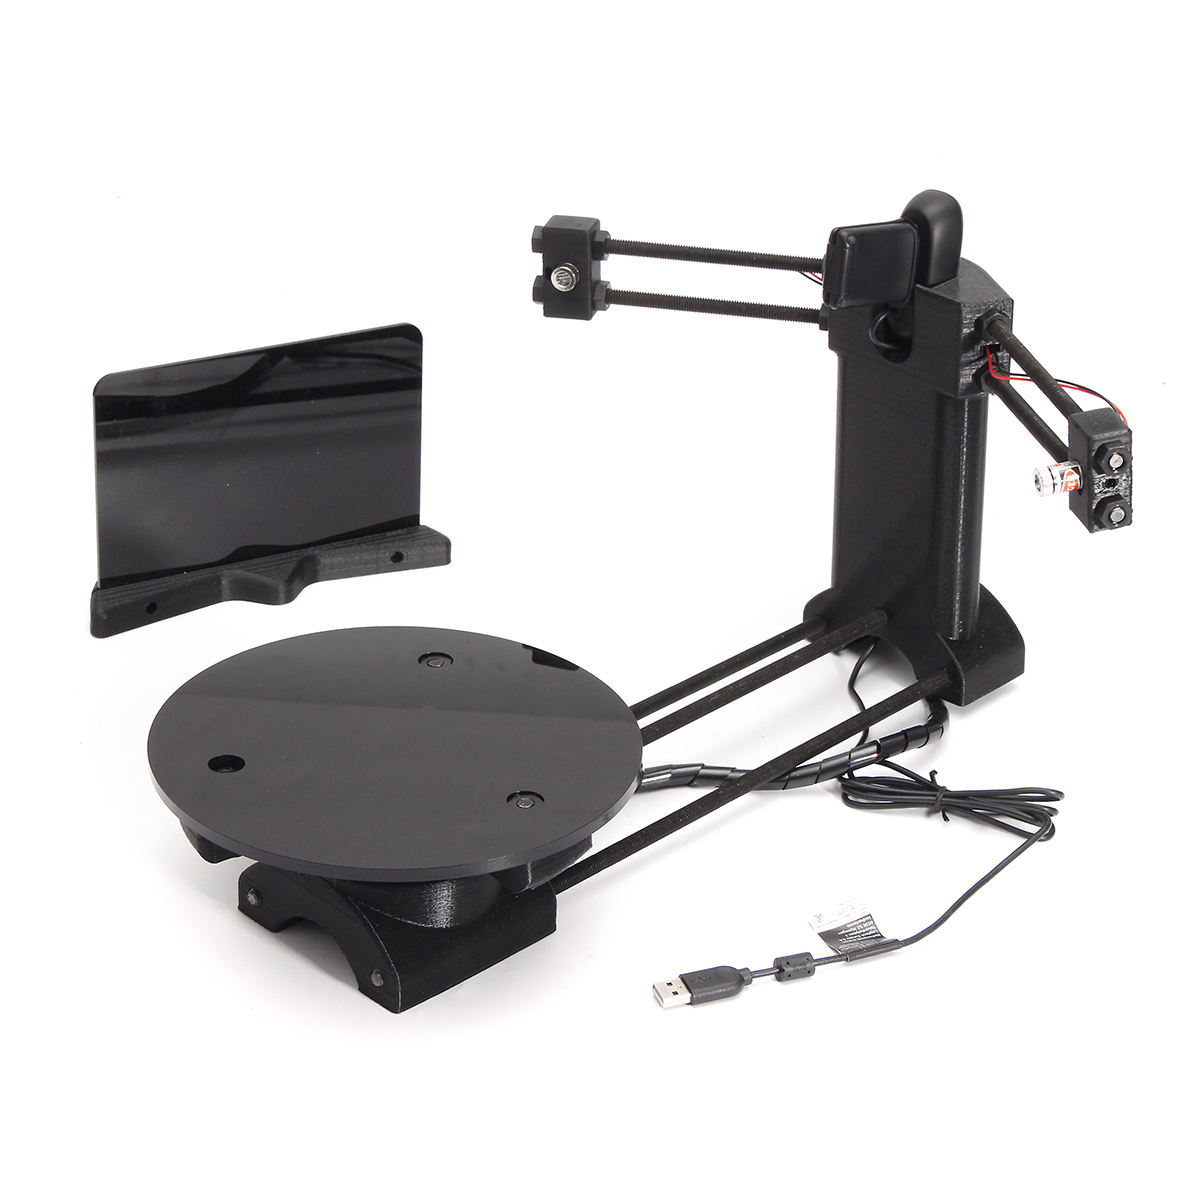 3D Open Source DIY 3D Scanner kit Advanced Laser Scanner w/ C270 Camera Ciclop 3D